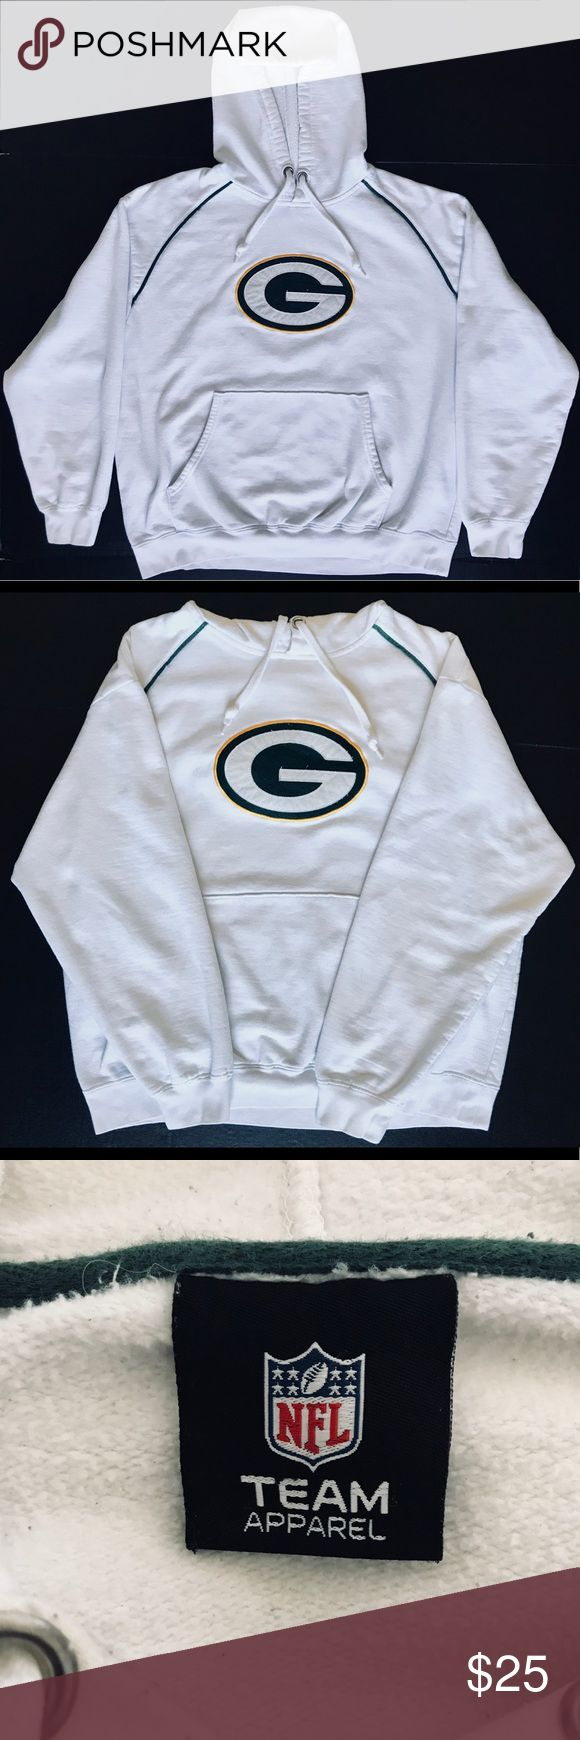 "NFL Team Apparel - GB Packers - Hoodie Pullover Gently Worn. Excellent Condition. Washed and Clean from a smoke free home. No visible signs of rips, tears, stains or holes. Hoodie is not removable. Packers ""G"" logo has normal cosmetic wear due to use and laundering. Due to maintenance tag under NFL logo tag being cut off and based on measurements, sizing may be inaccurate. Please take the time to take your own comparison measurements before ordering.   Jacket Measurements: 23"" Wide (Pit to…"